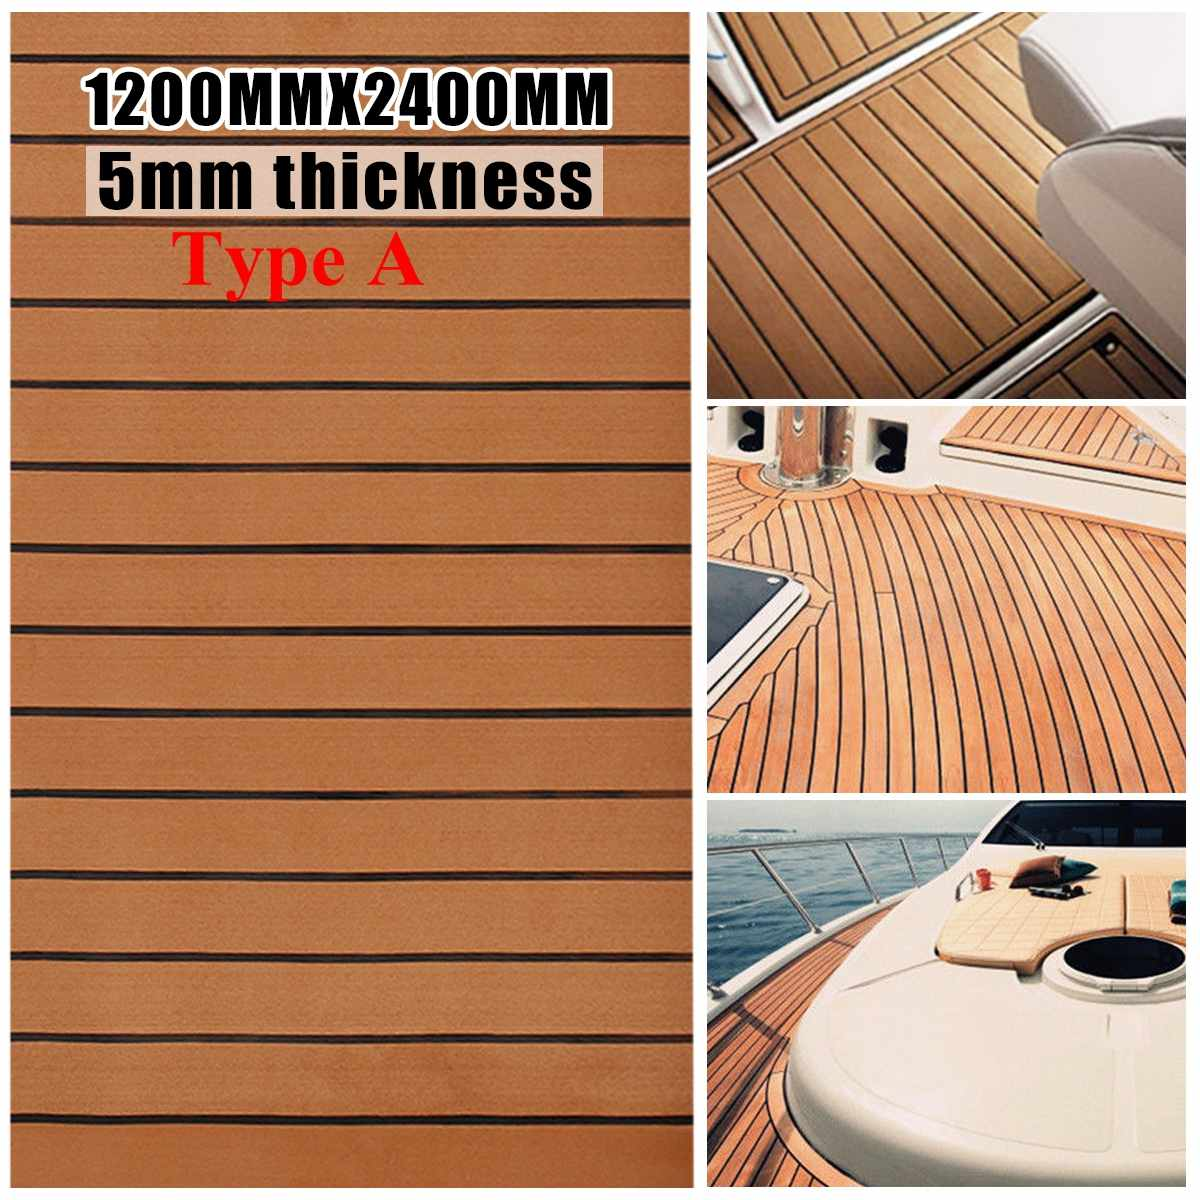 Multi-size EVA Foam Faux Teak Decking Sheet Dark Brown Marine Boat 35 X 95 5/6MM Thick DIY Car Protective Floor CarpetMulti-size EVA Foam Faux Teak Decking Sheet Dark Brown Marine Boat 35 X 95 5/6MM Thick DIY Car Protective Floor Carpet